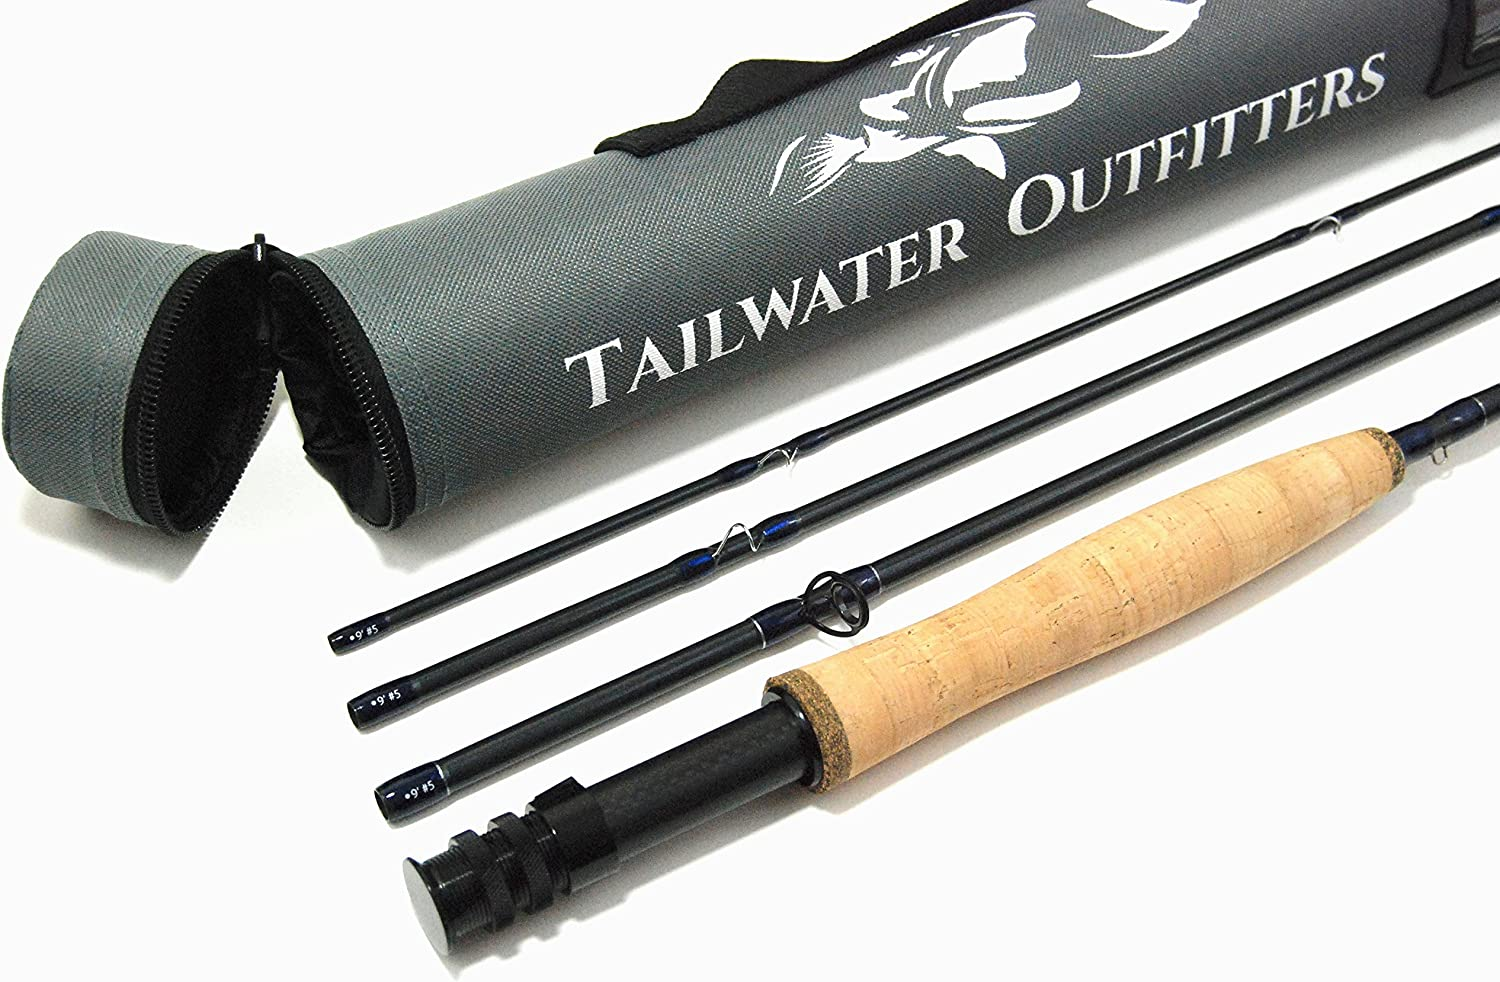 Tailwater Outfitters Toccoa Fly Rod